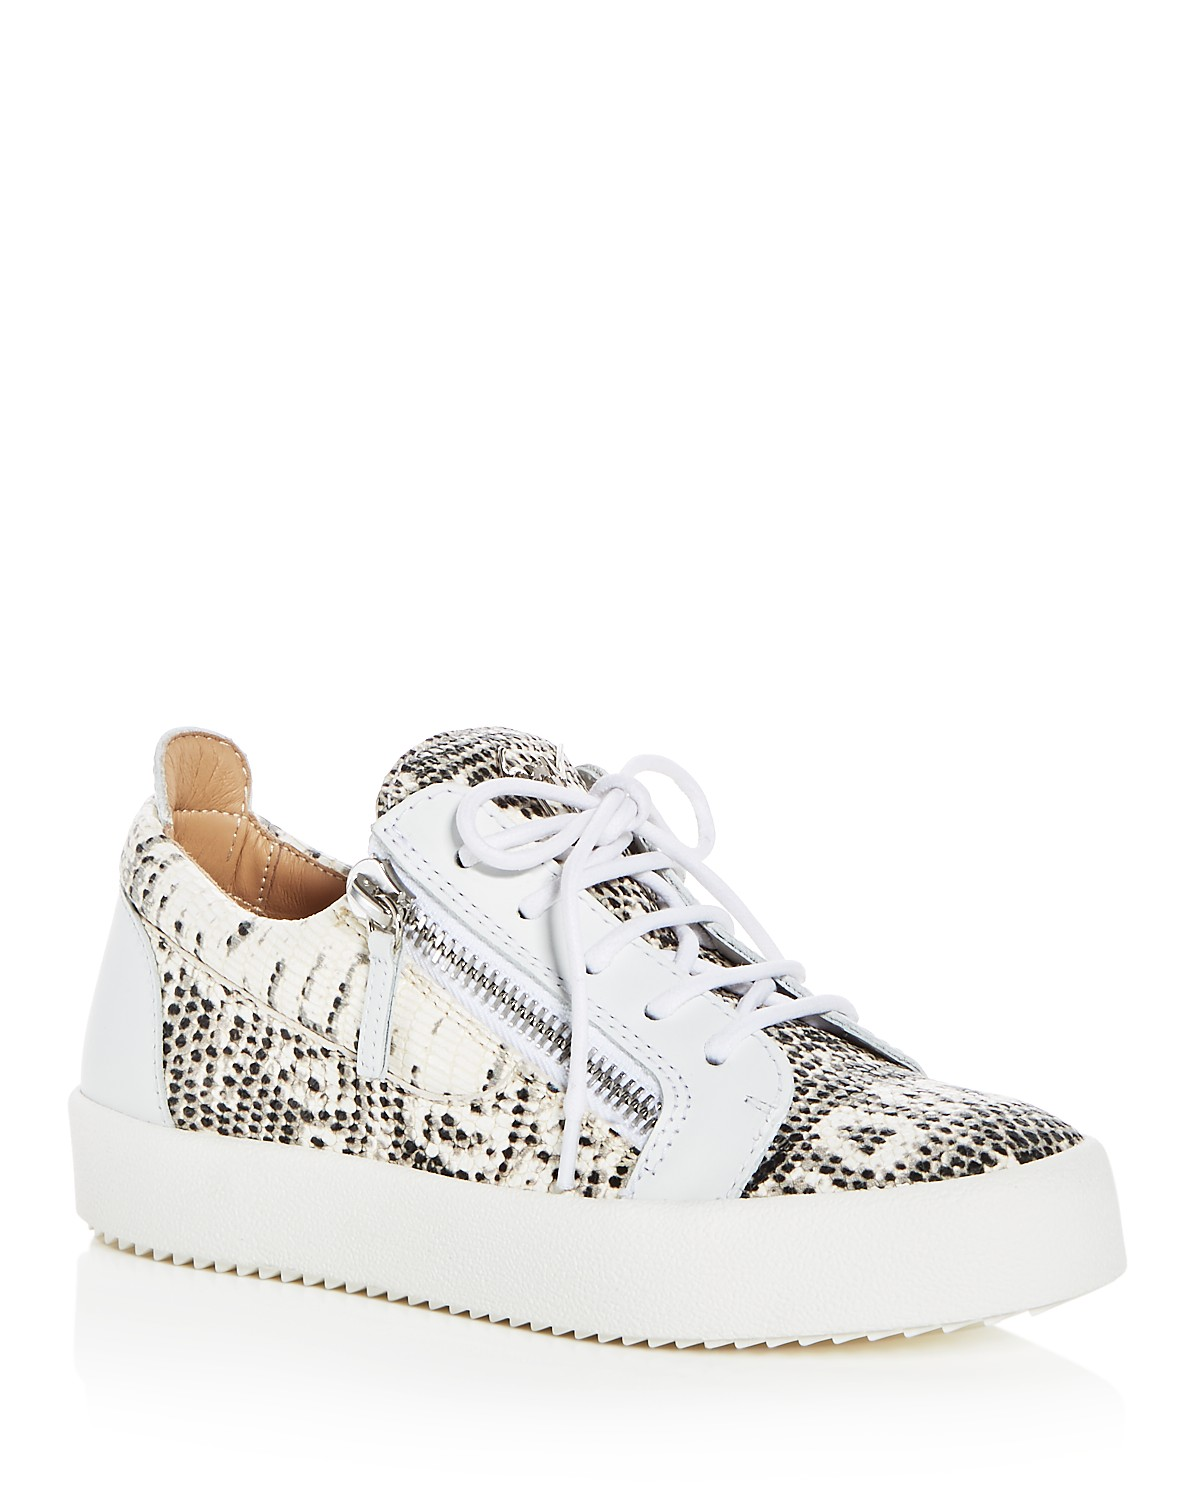 Giuseppe Zanotti Women's May London Snake Embossed Leather Platform Lace Up Sneakers 41FFWkMIv